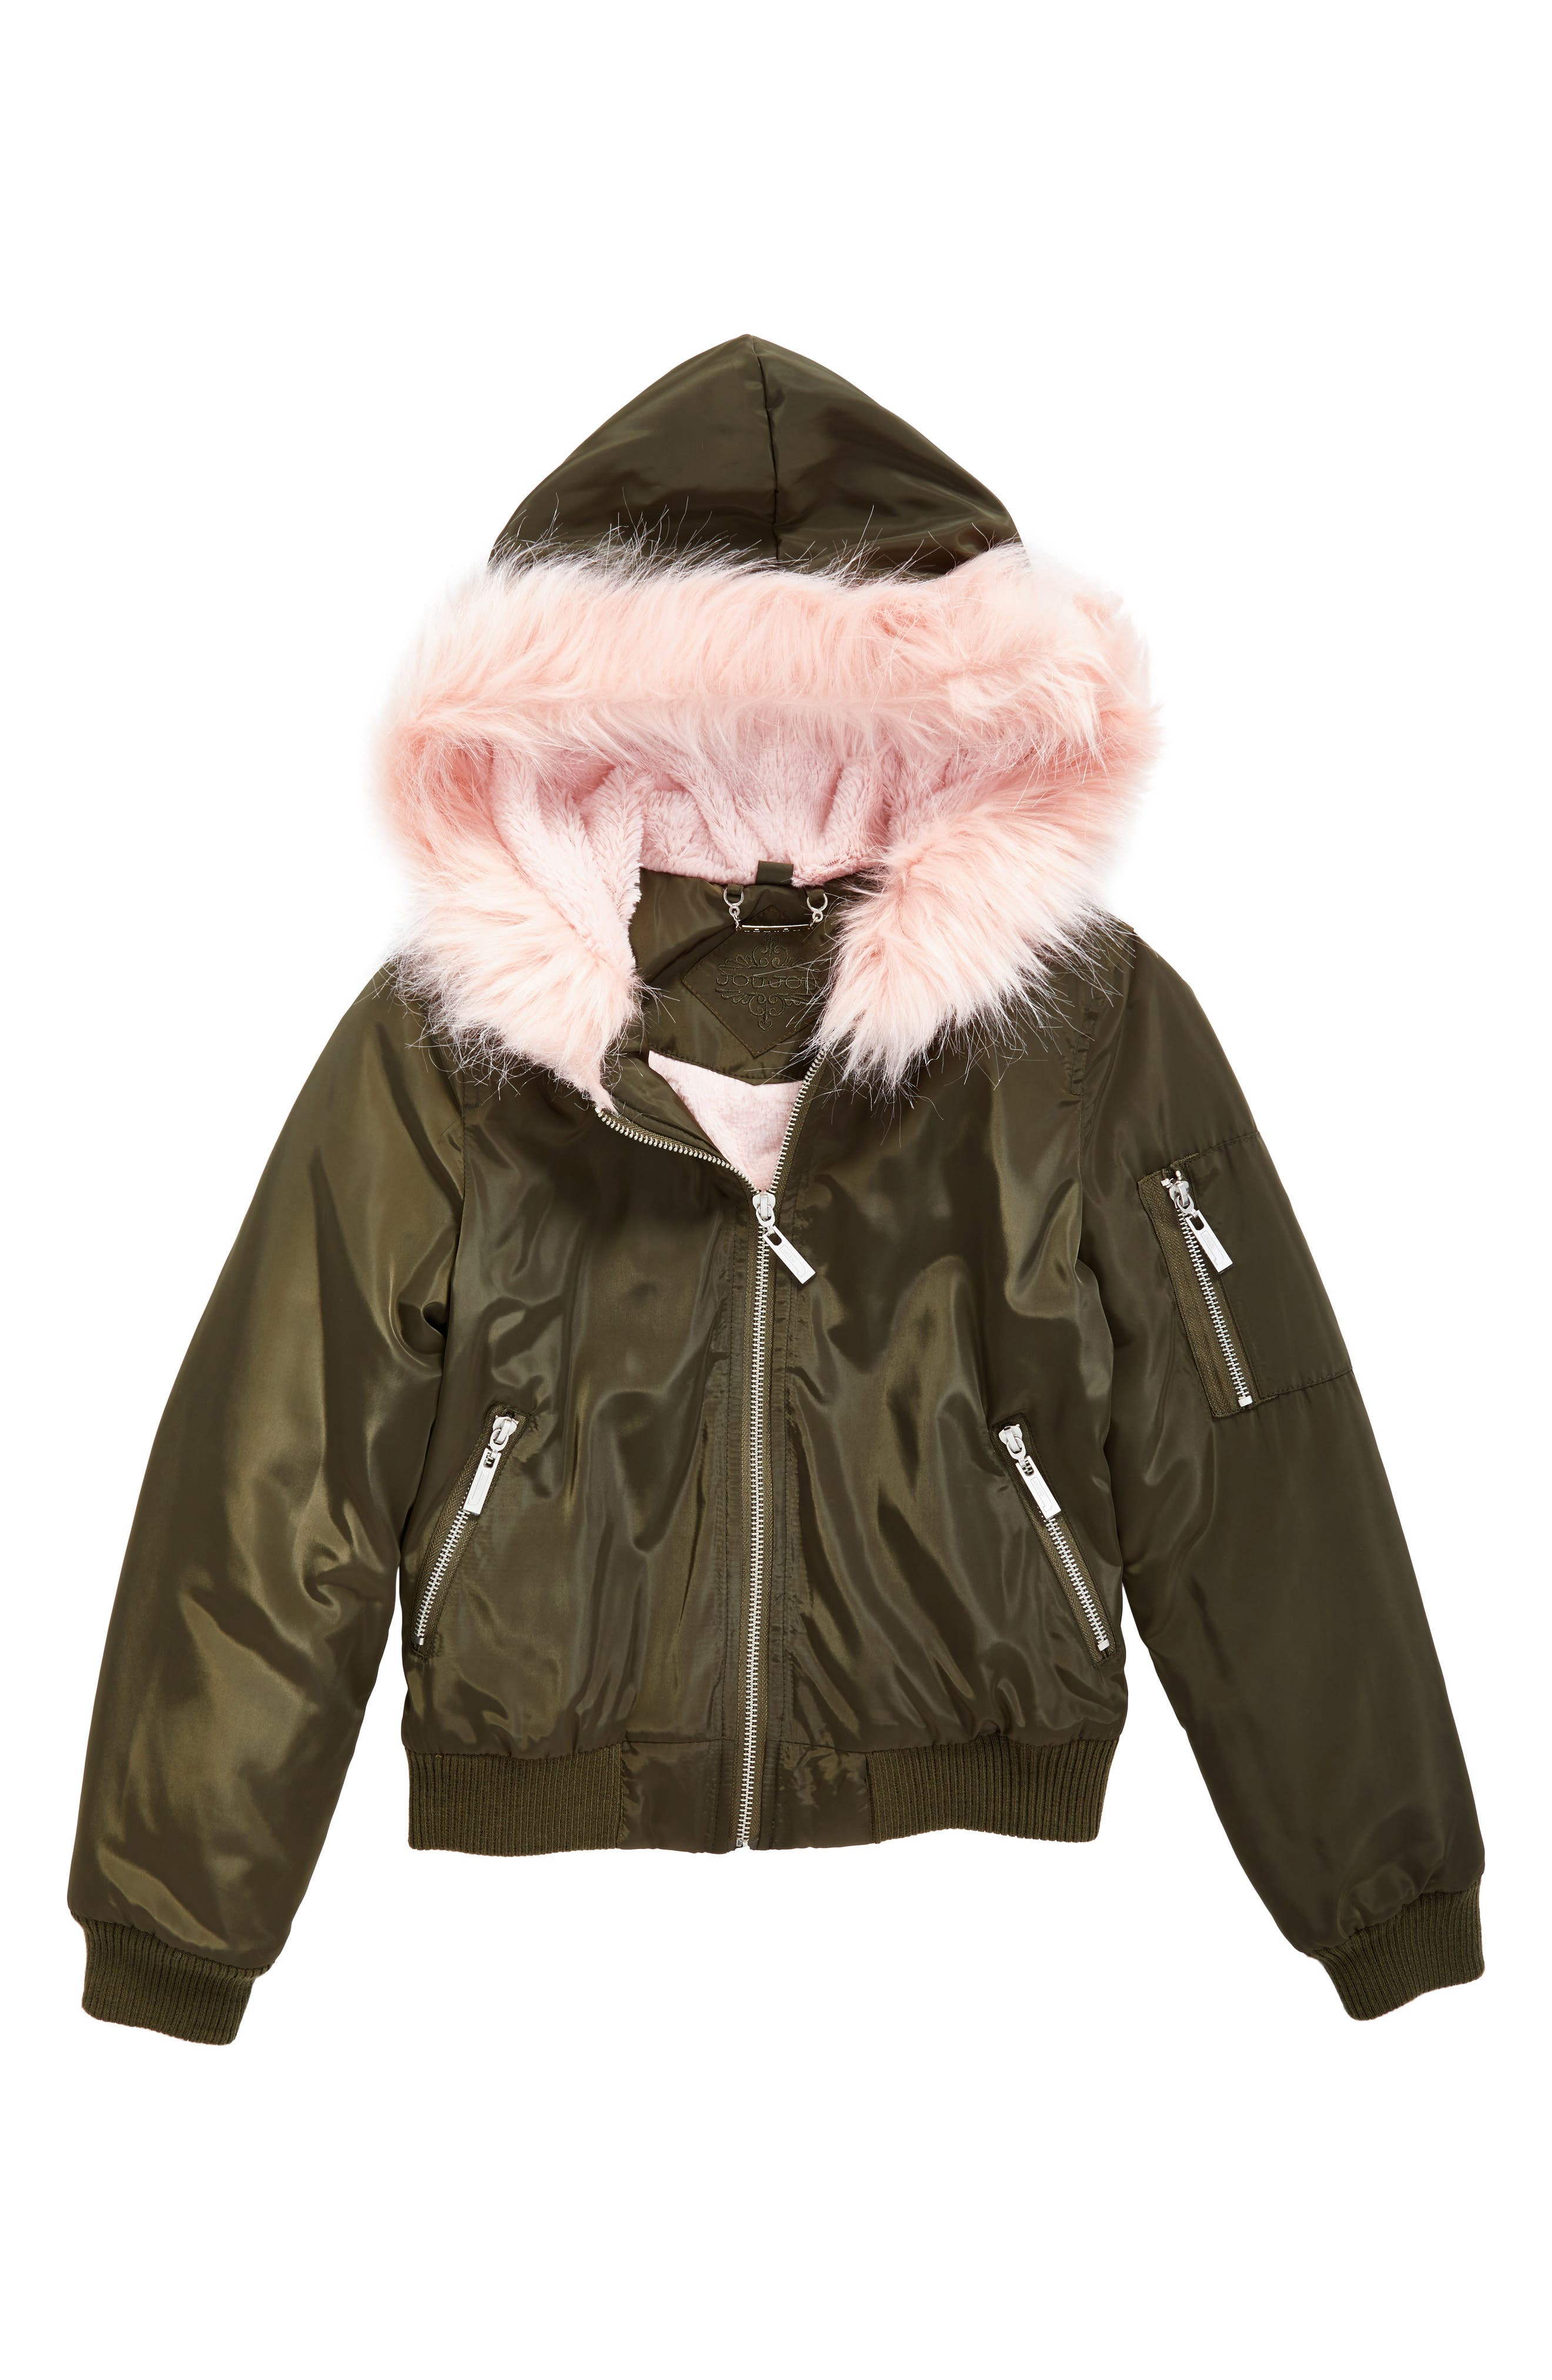 Hooded Bomber Jacket with Faux Fur Trim,                             Main thumbnail 1, color,                             Olive/ Pink